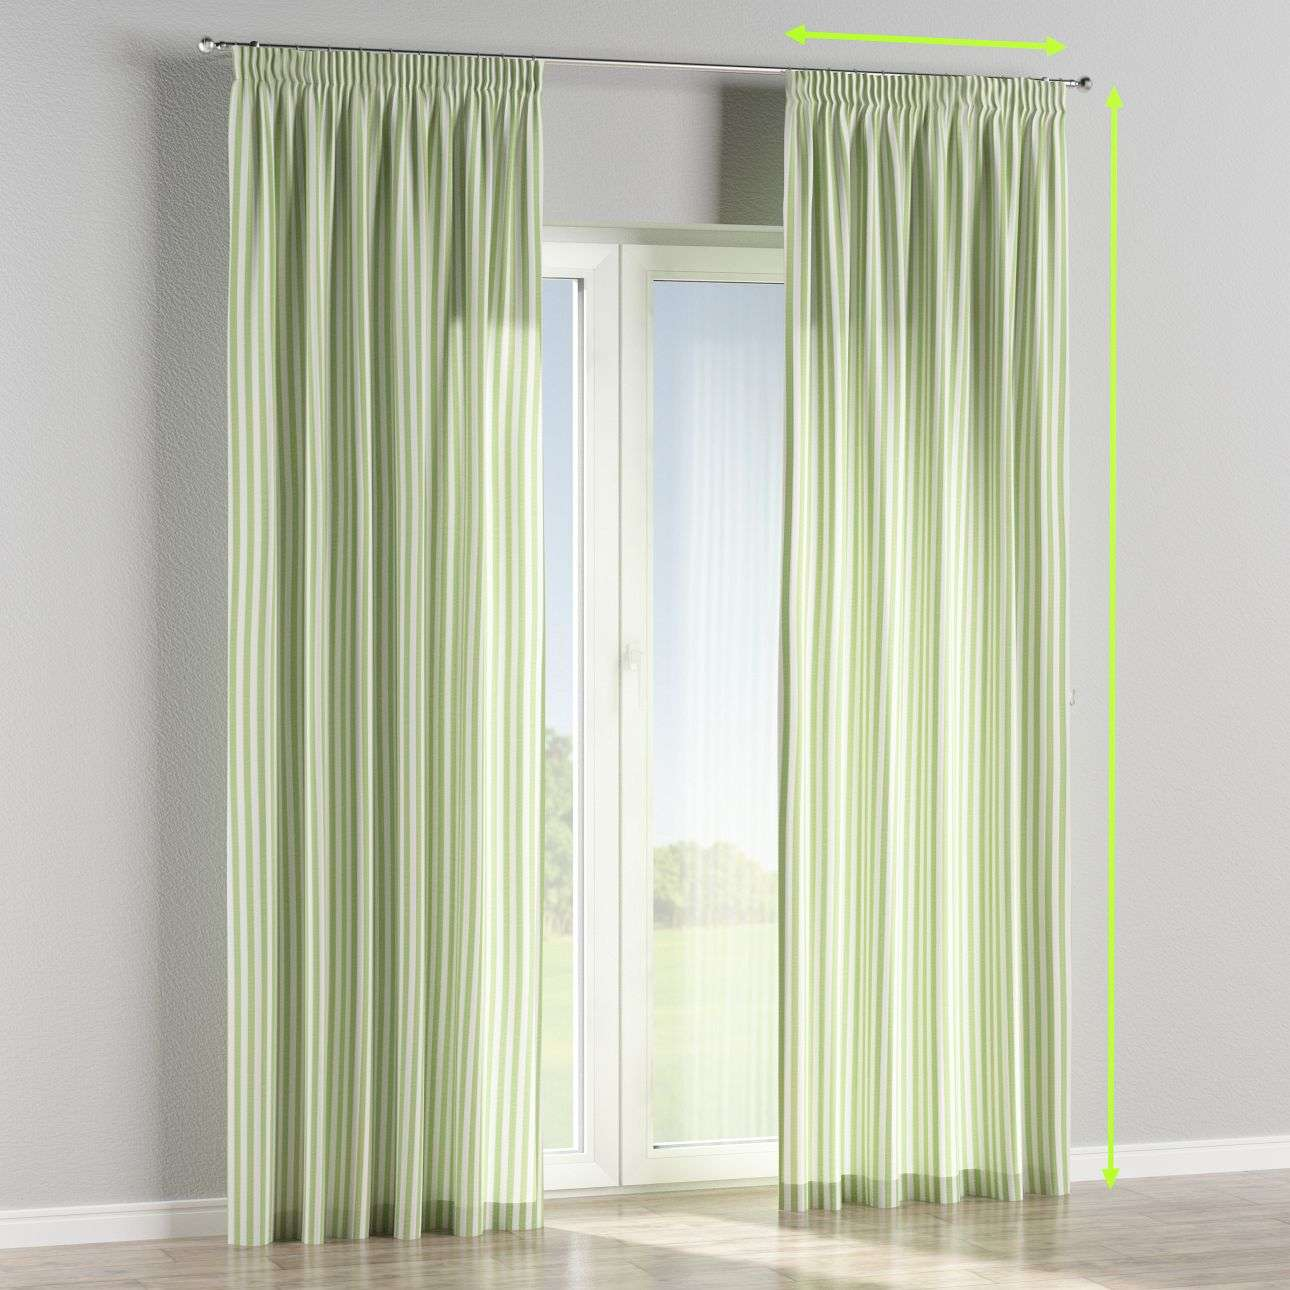 Pencil pleat lined curtains in collection Quadro, fabric: 136-35